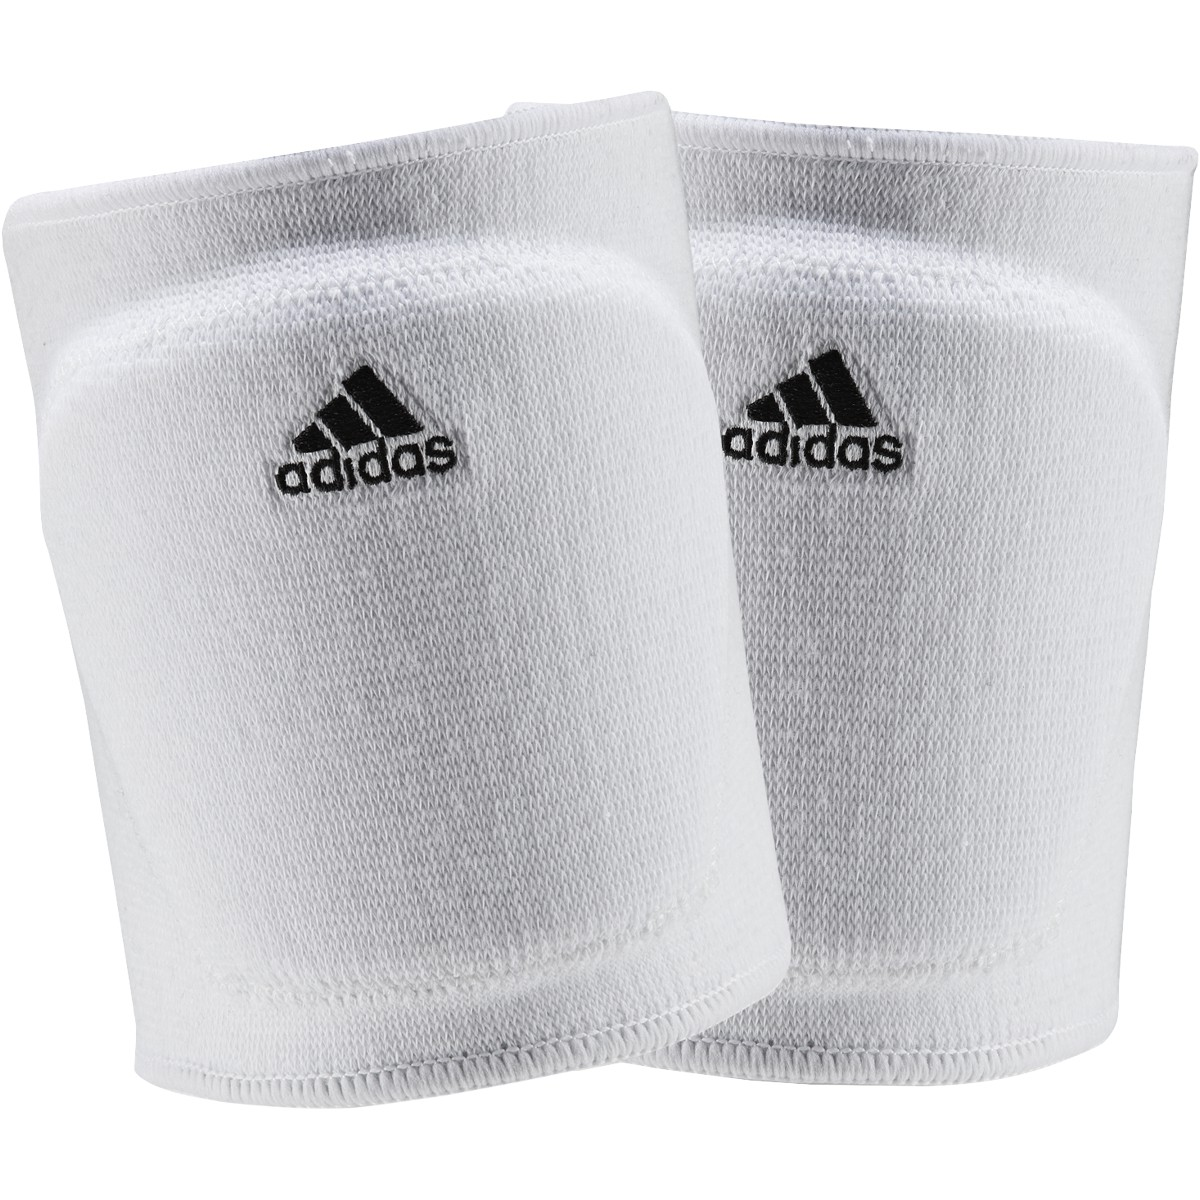 Adidas 5in Knee Pads WH